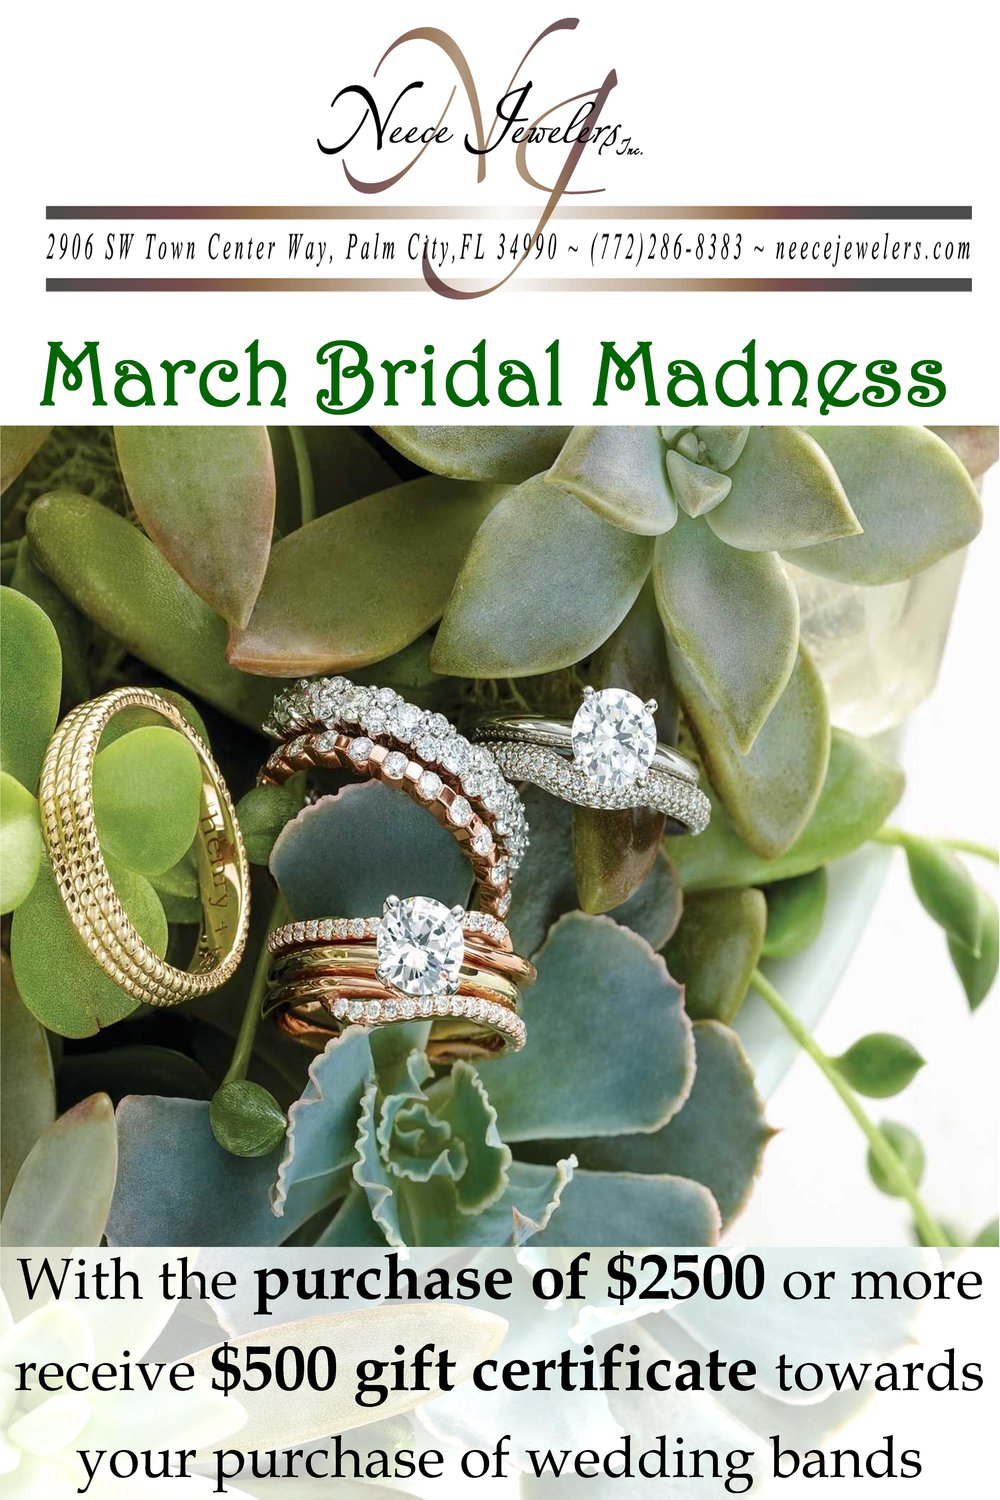 Bridal march madness.jpg